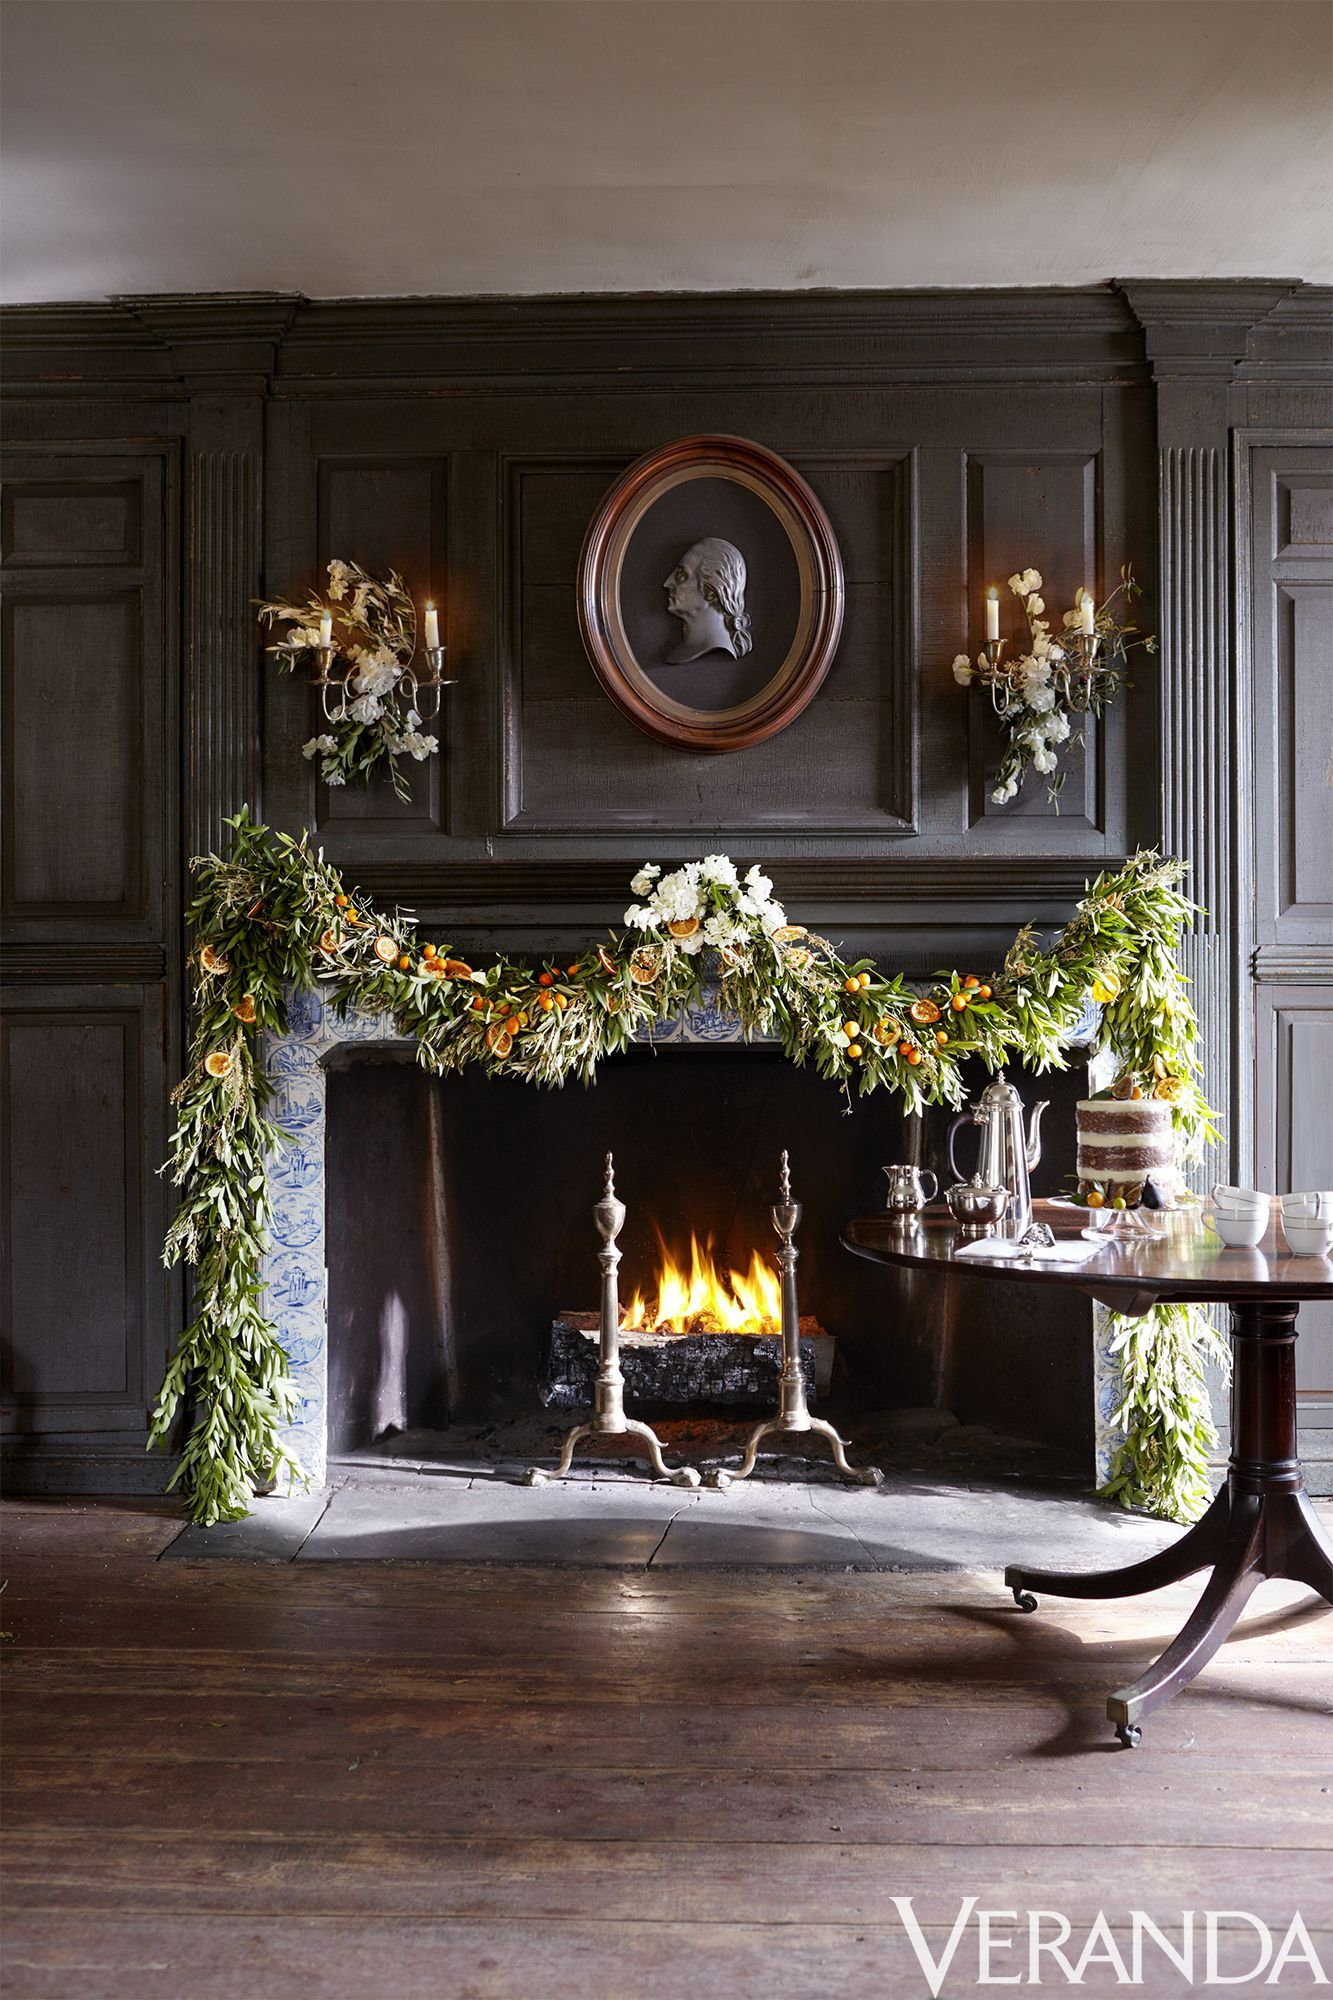 15 Winter Floral Arrangements For Grand Seasonal Decor